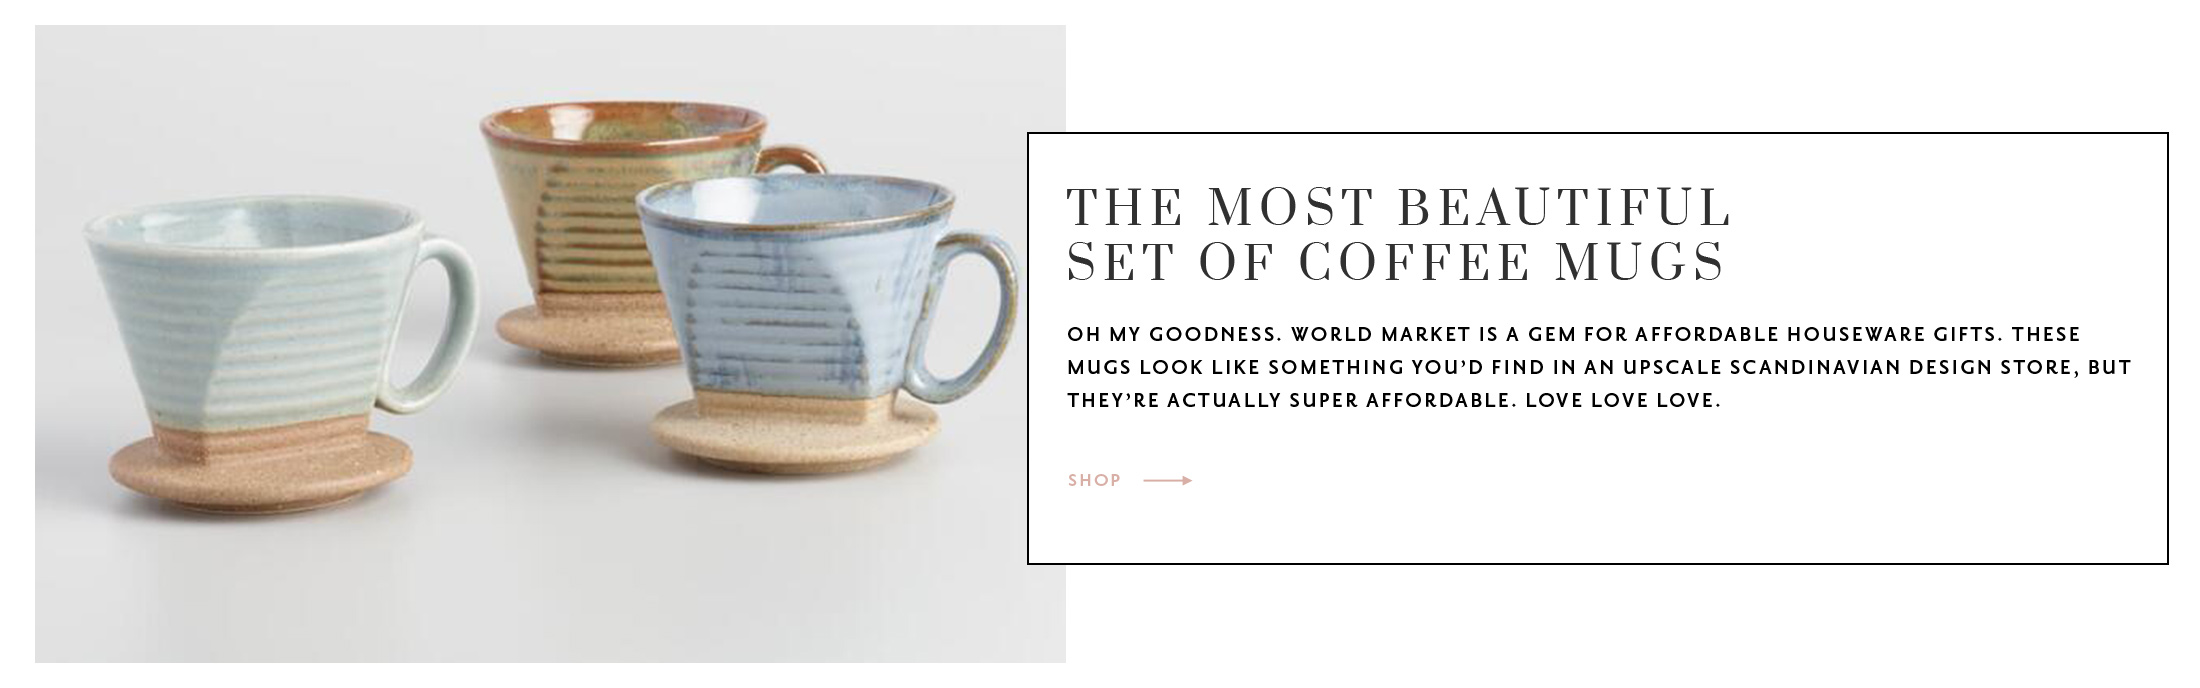 The Best Gifts Under $50 - Set of coffee mugs